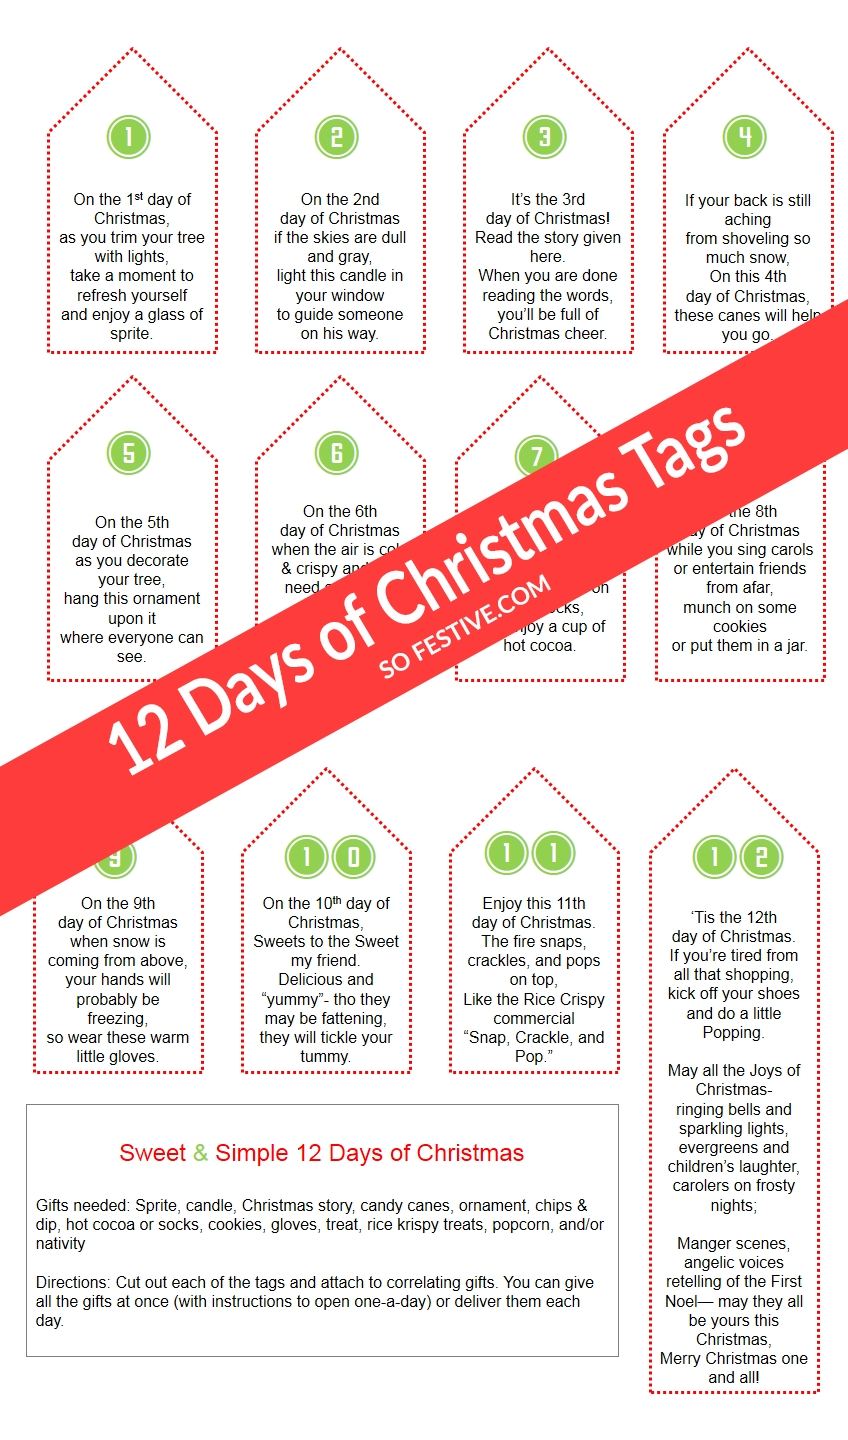 Imágenes de Gift Ideas For 12 Days Of Christmas Wife